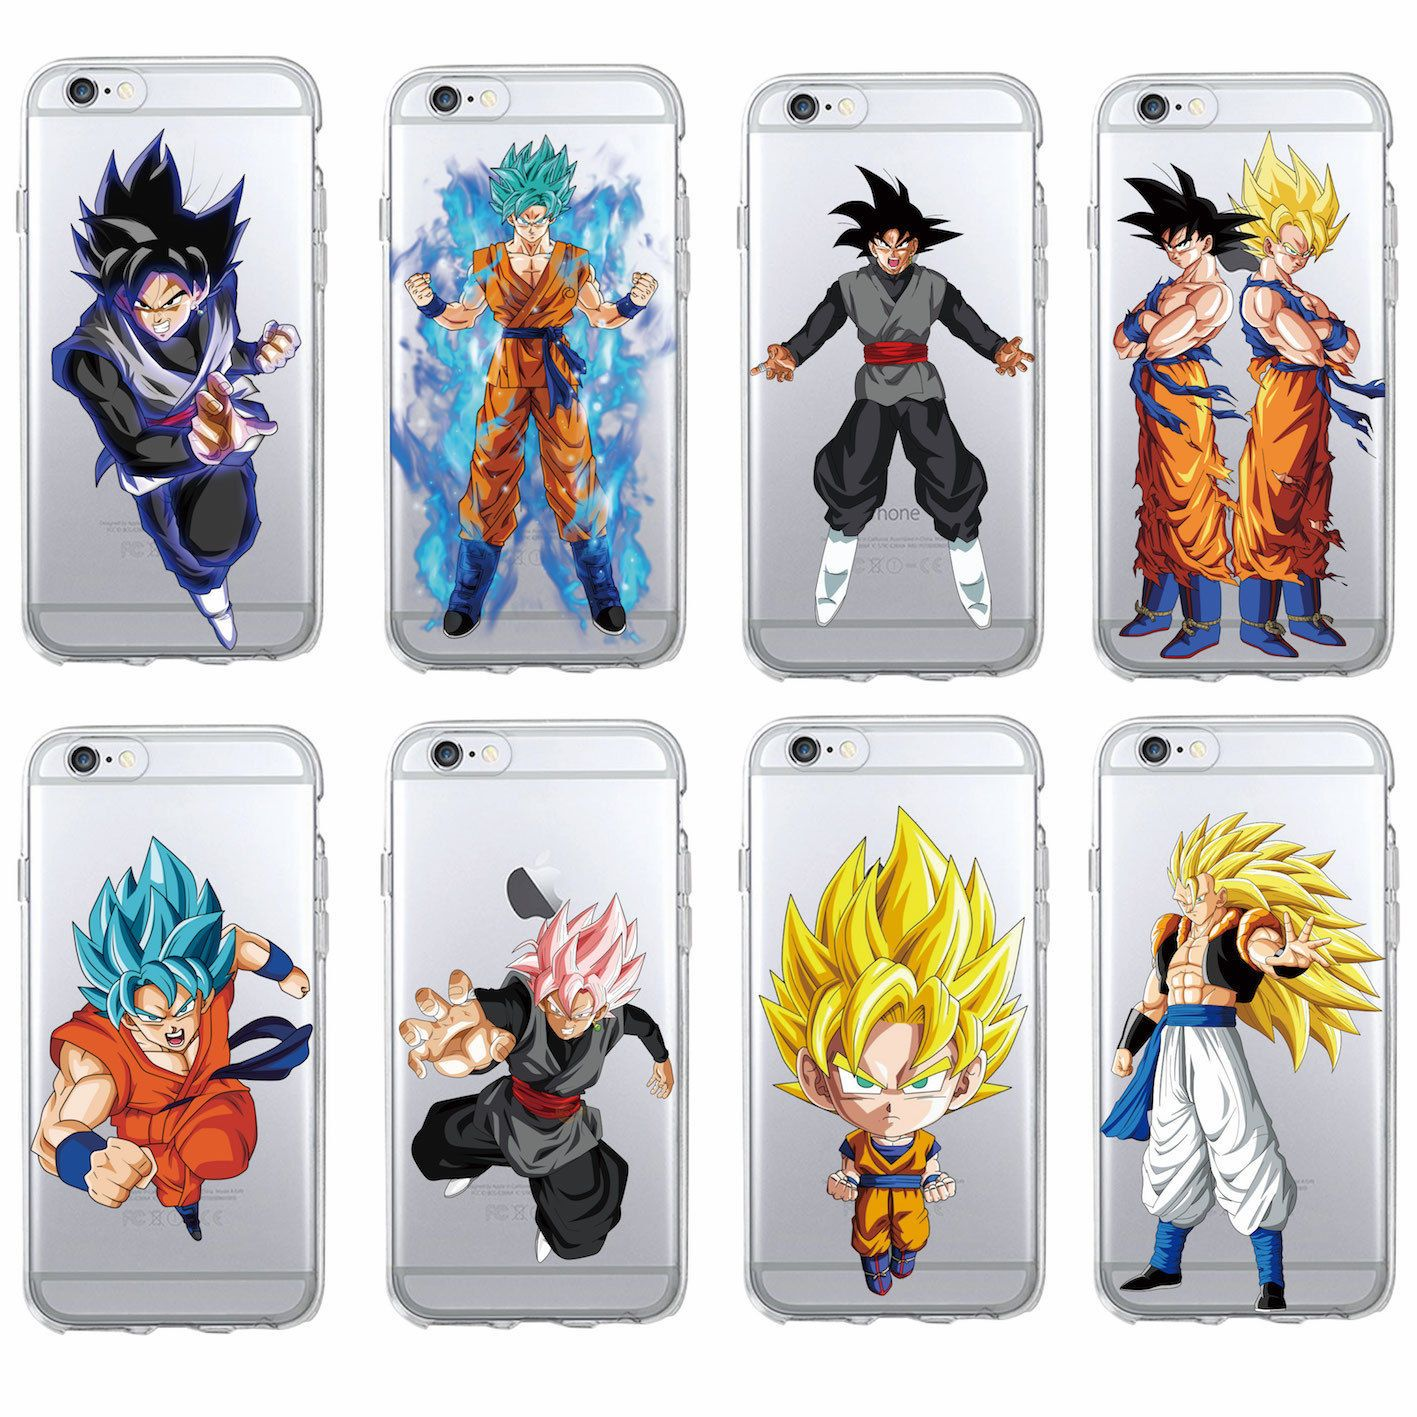 USA Seller Apple iphone 6 /& 6S Anime Phone case Cover DBZ Dragon Ball Goku Buu..